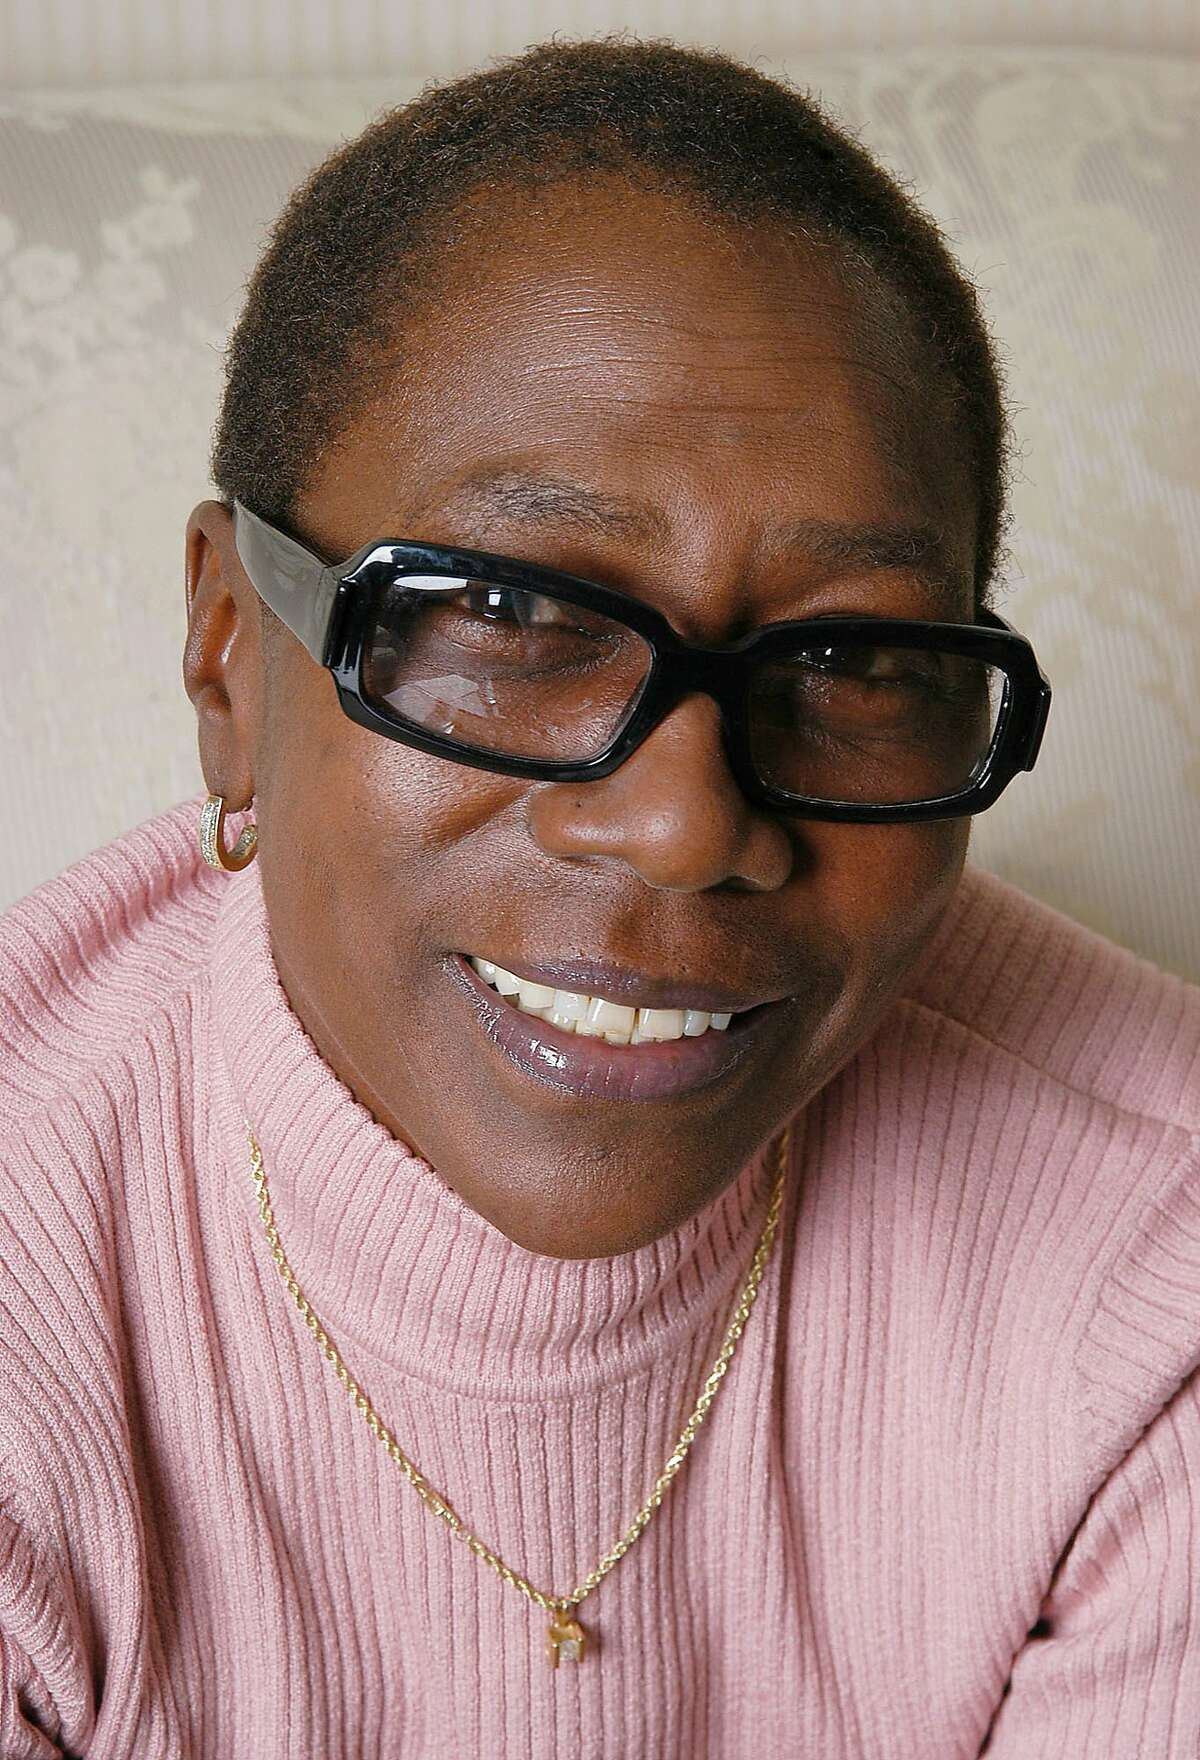 Afeni Shakur Davis, the mother of legendary rapper Tupac Shakur, has died at age 69. PHOTOS: More notable deaths of 2016.